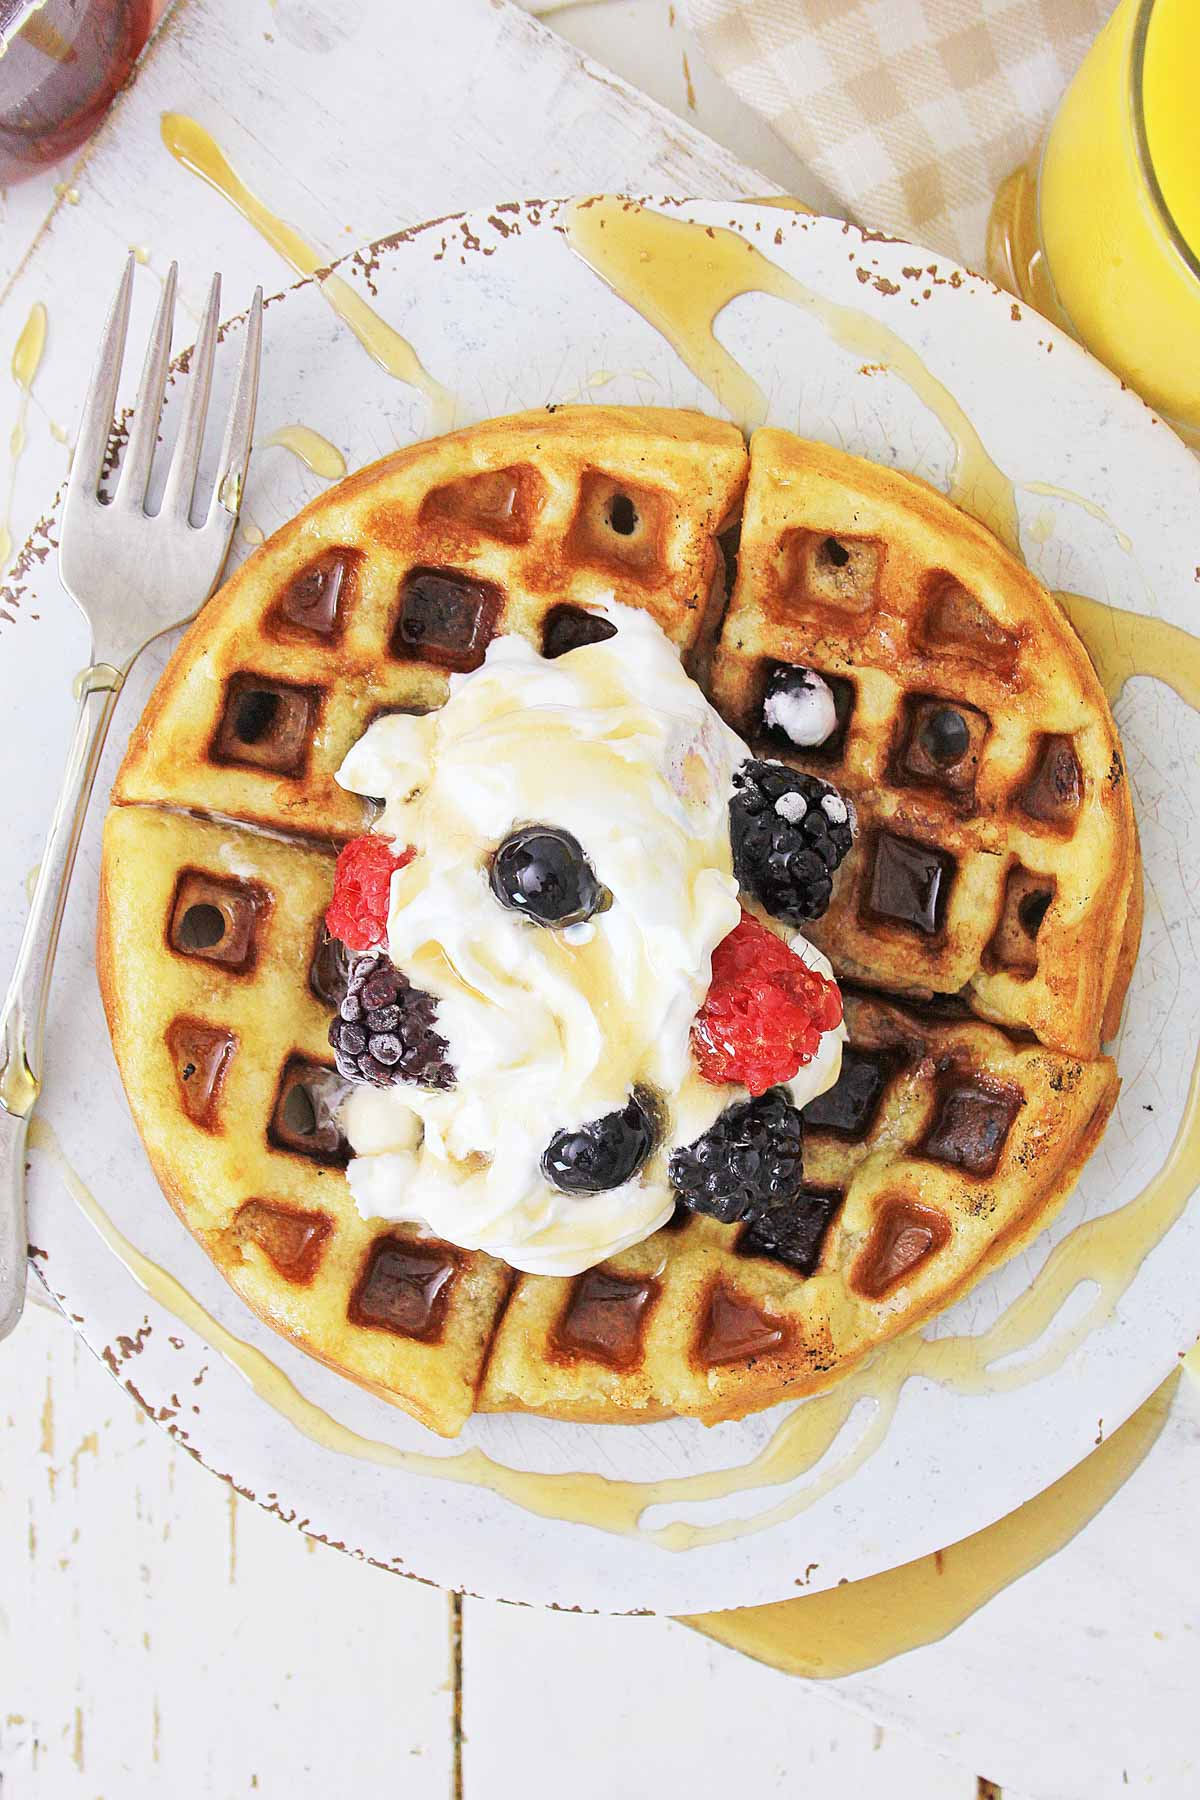 top down view of a waffle on a plate with syrup drizzled.